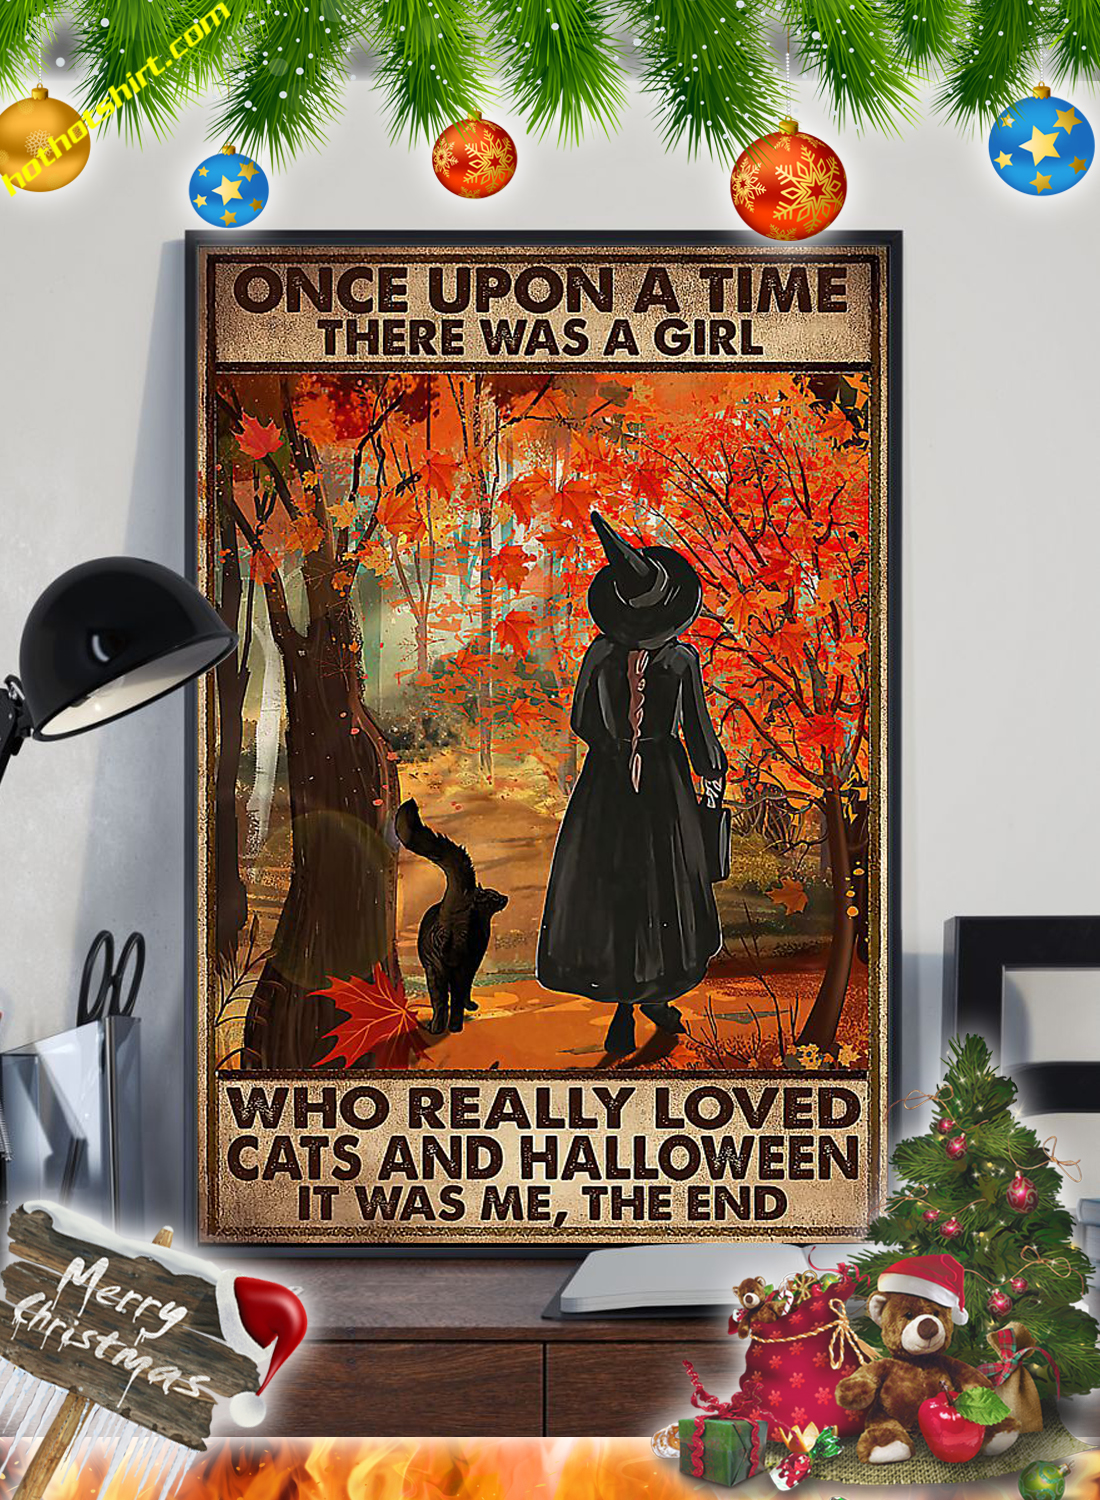 Once upon a time there was a girl who really loved cats and halloween it was me the end poster 2